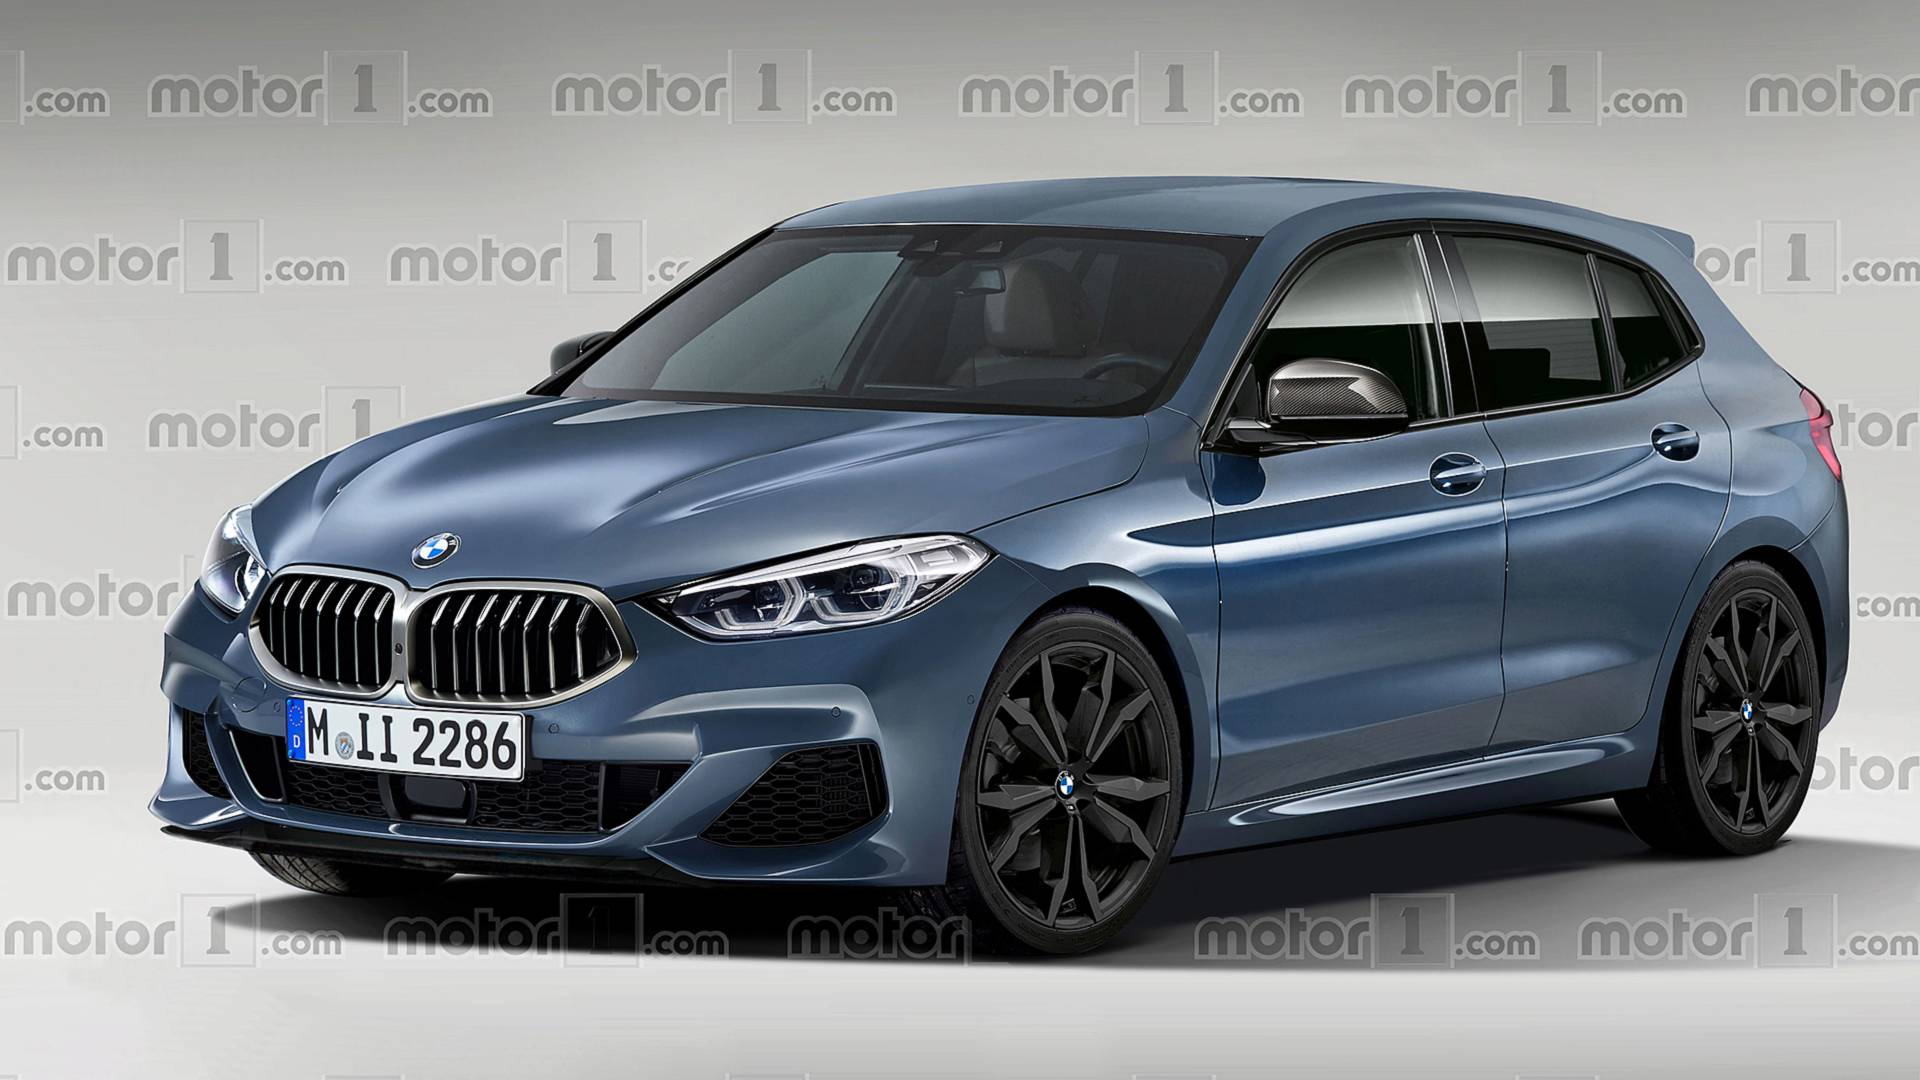 Bmw 1 Series New Model Release Date >> This Is What The 2019 Bmw 1 Series Could Look Like